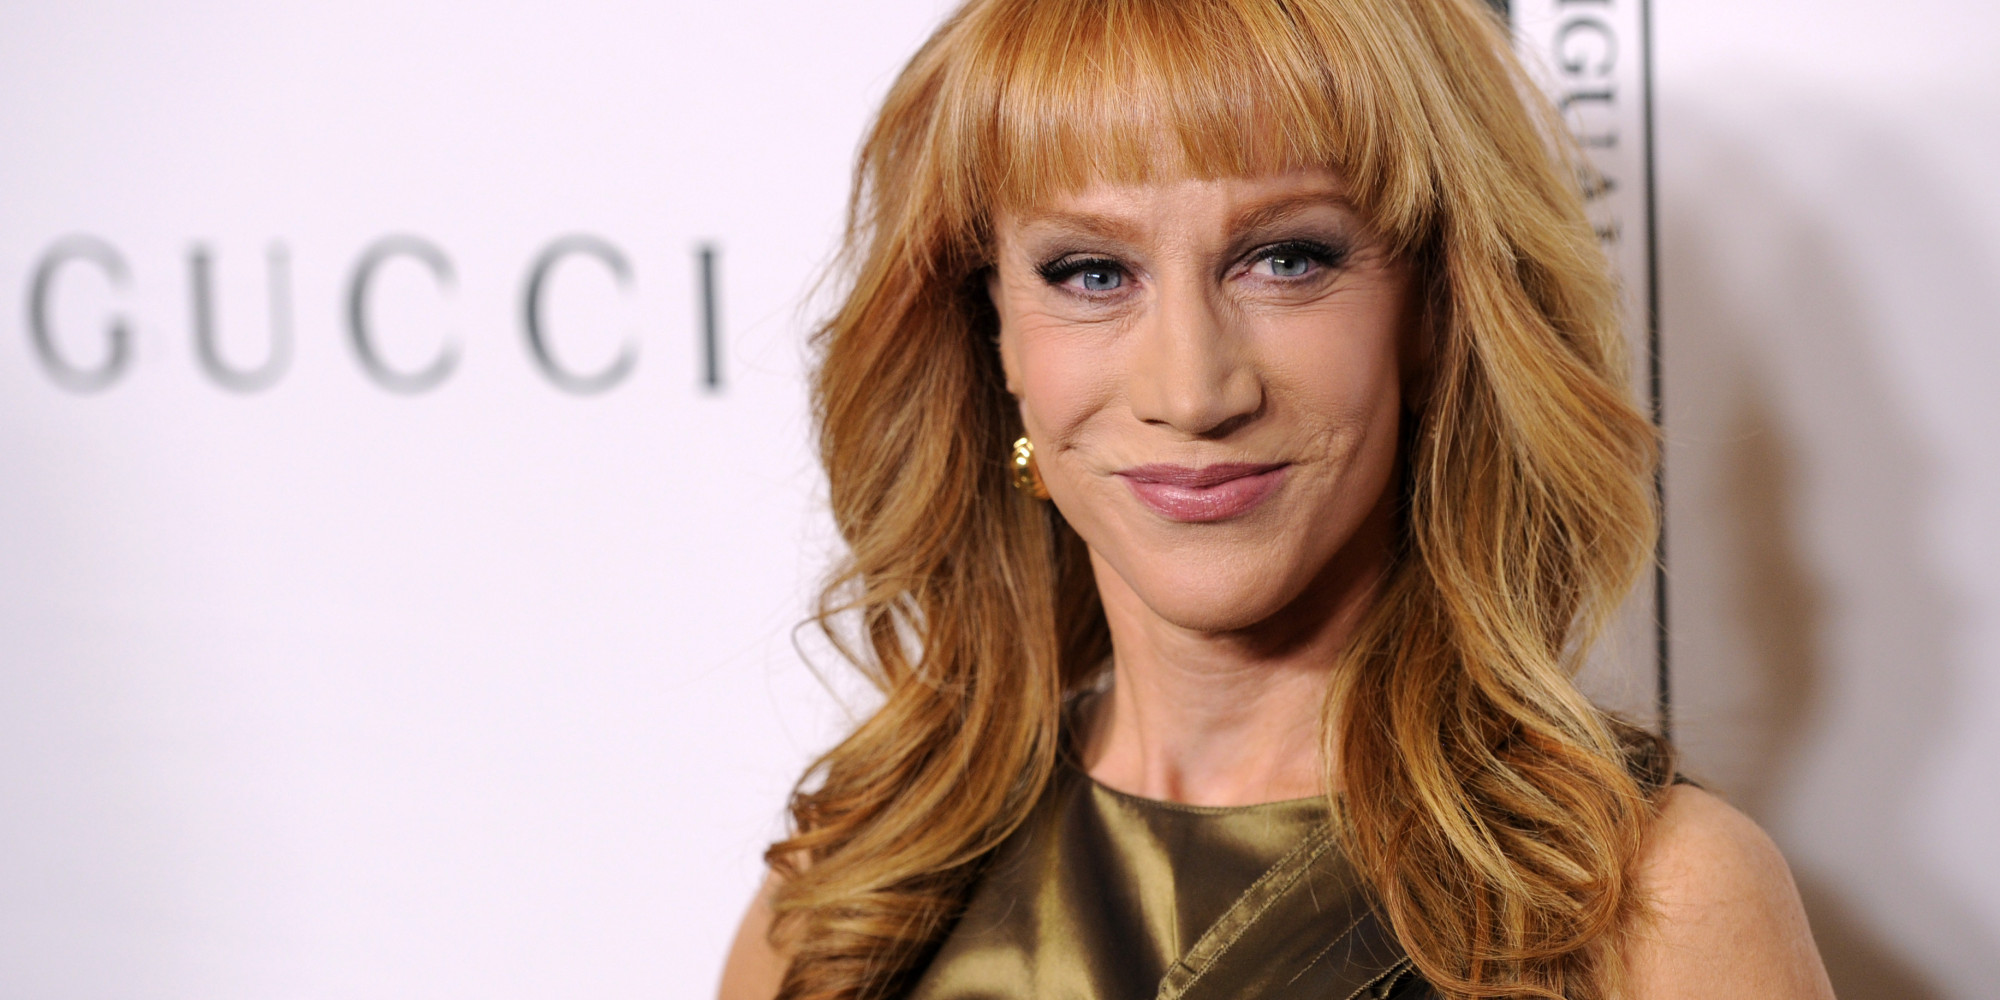 Kathy Griffin - Comedian, Actress